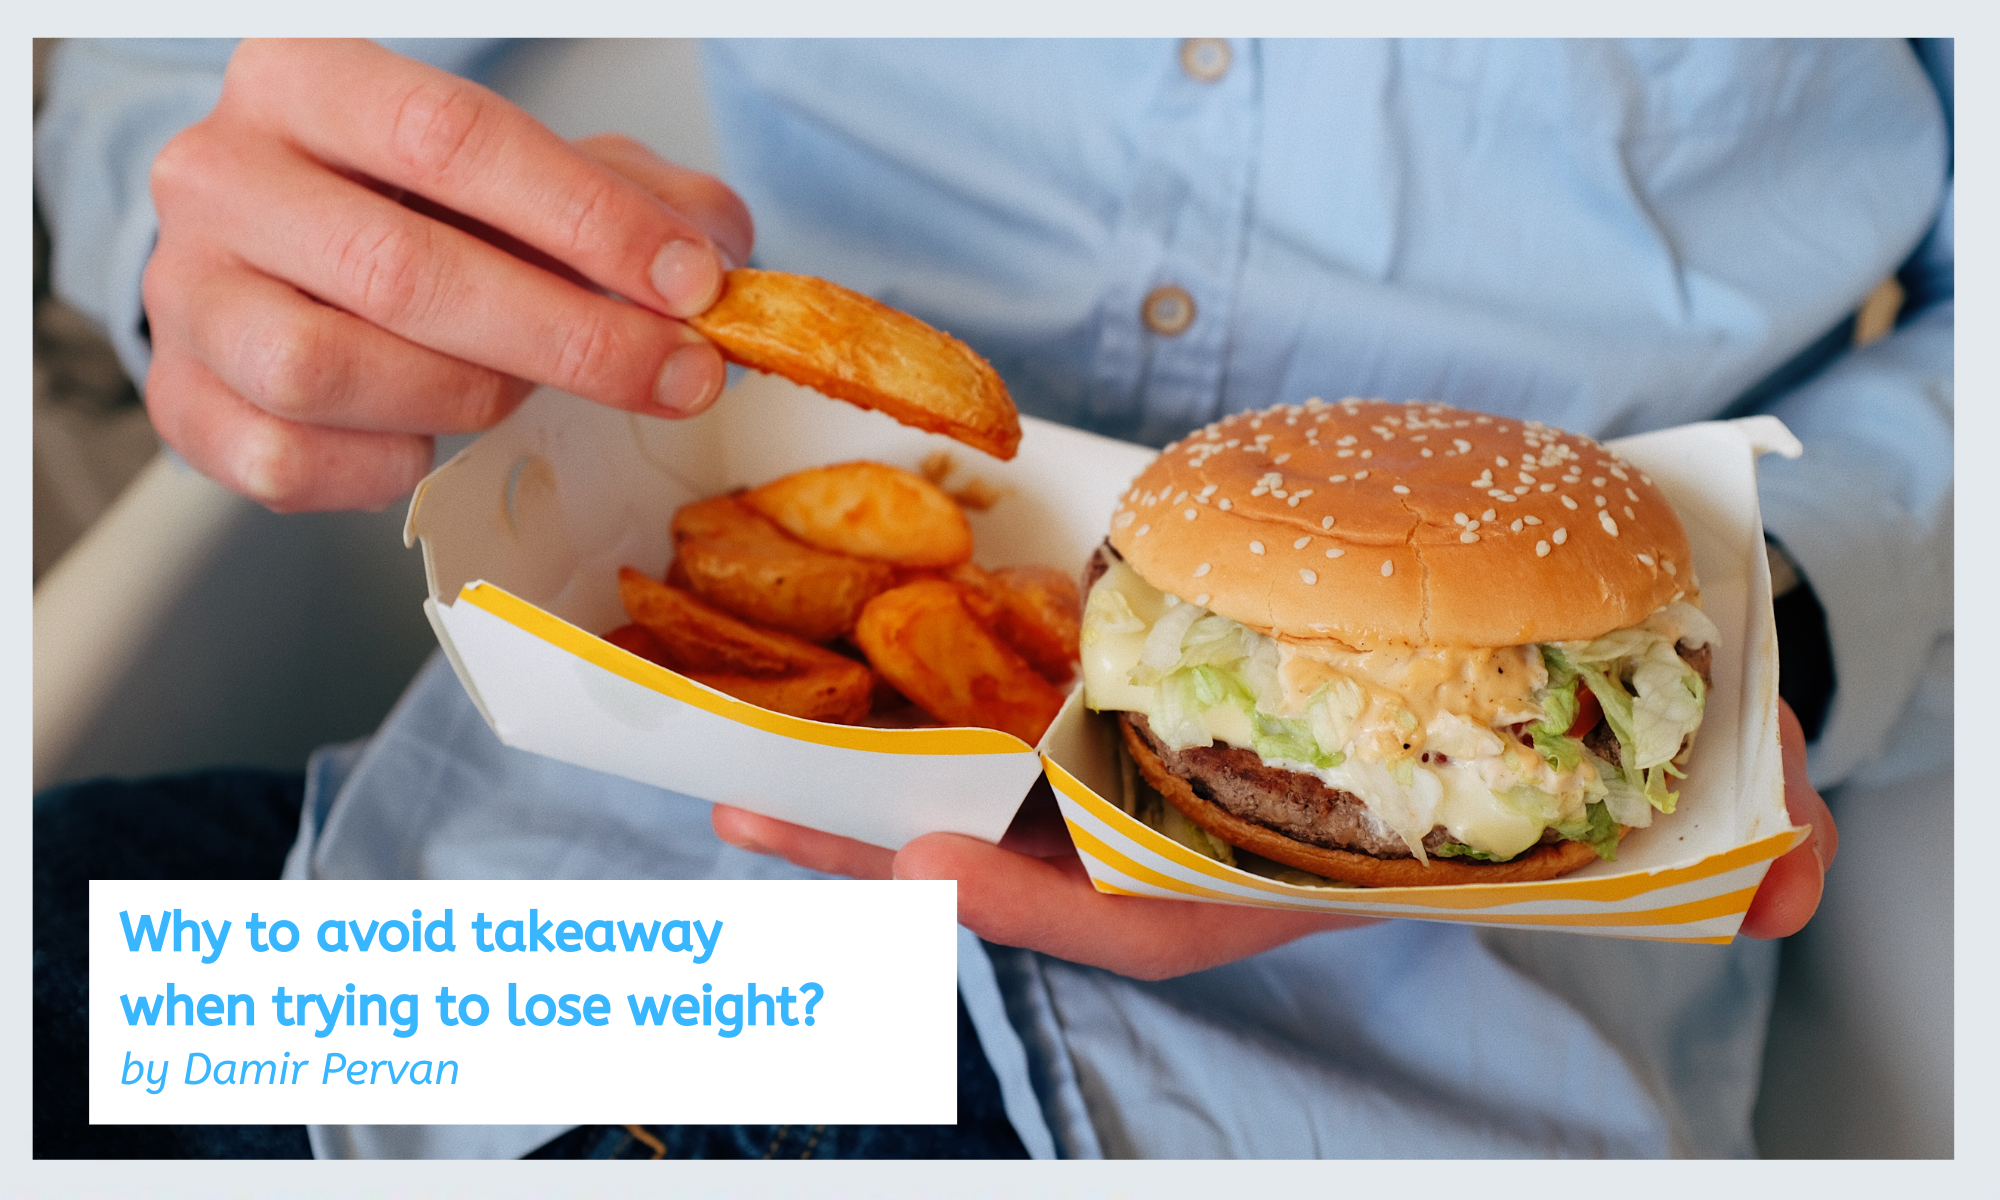 Why to avoid takeaway when trying to lose weight